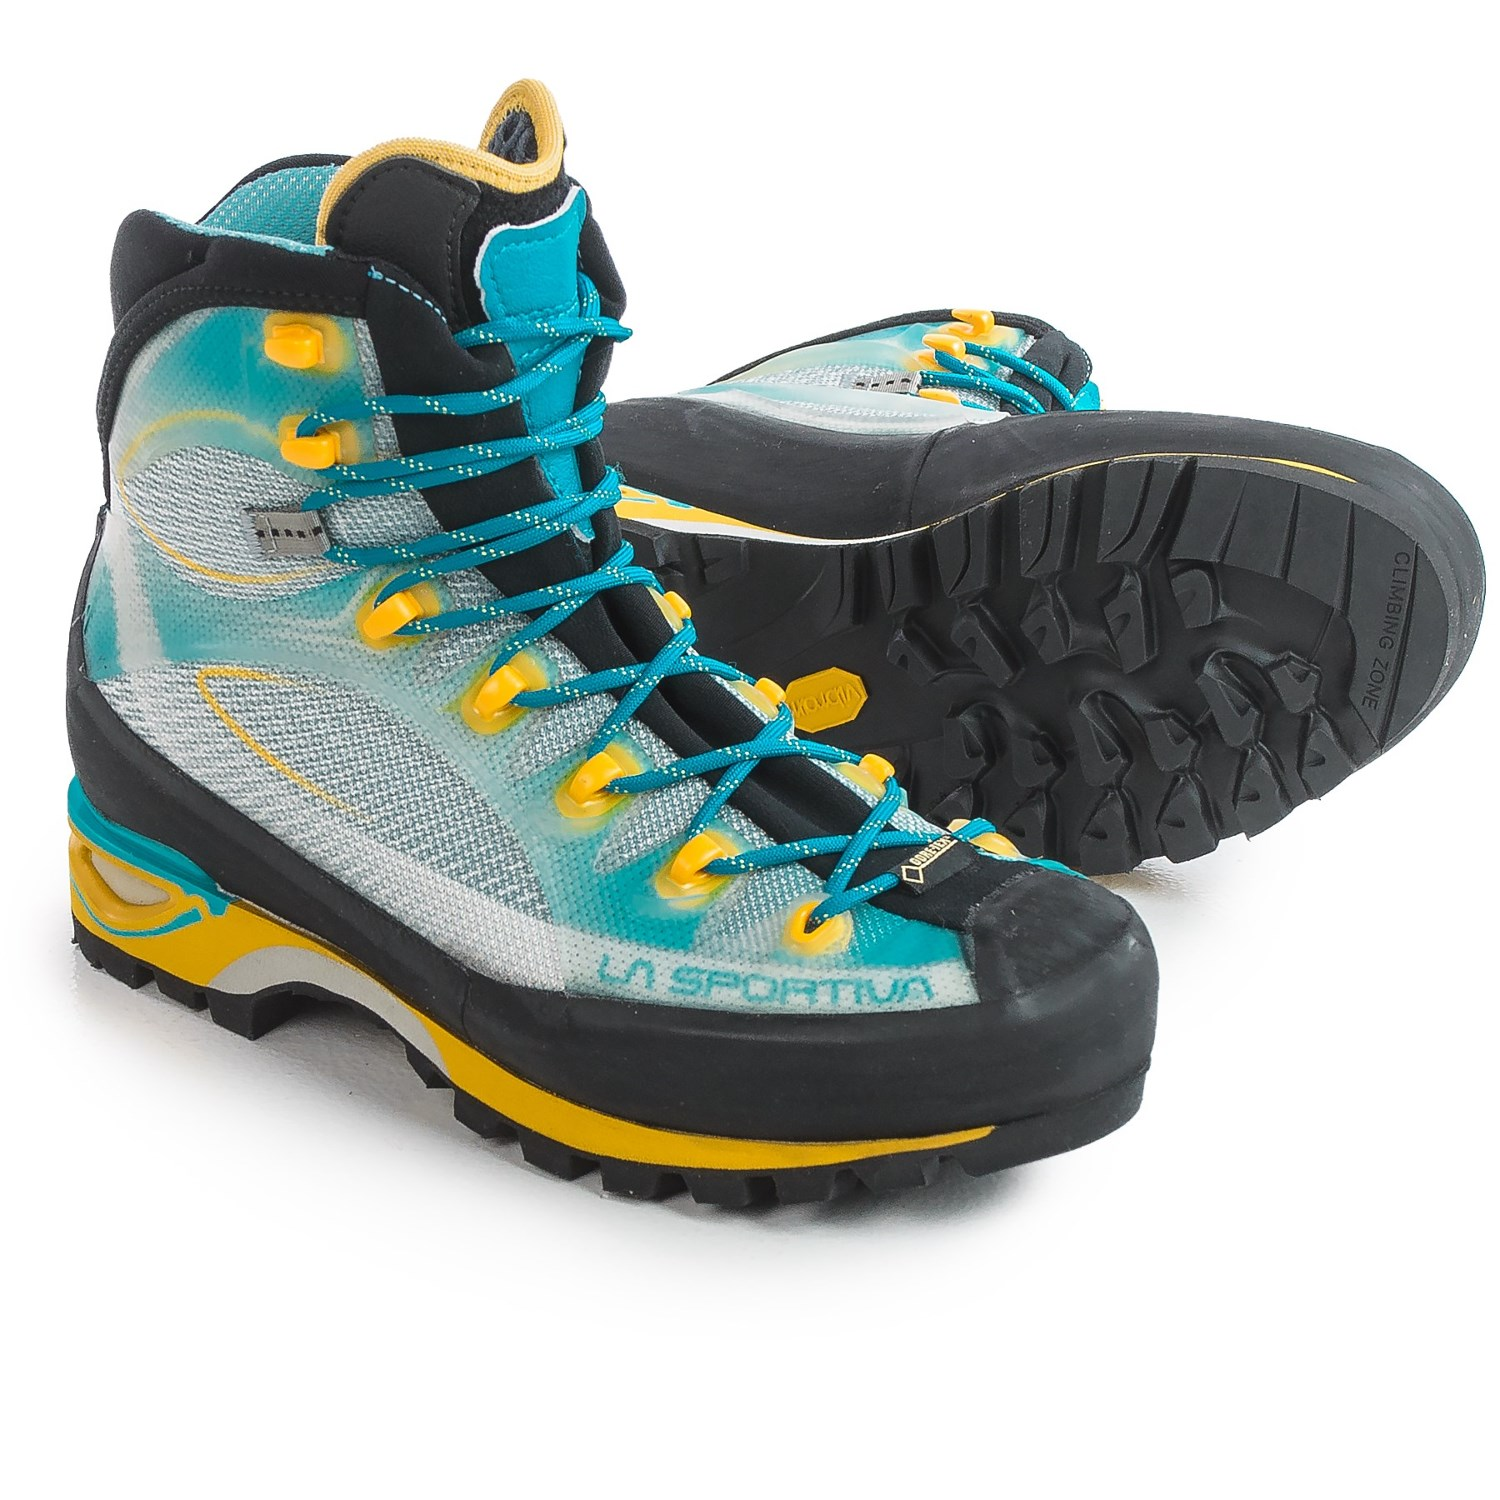 3I7Z La Sportiva Womens Avail Hoody Good Deal Outlet Store